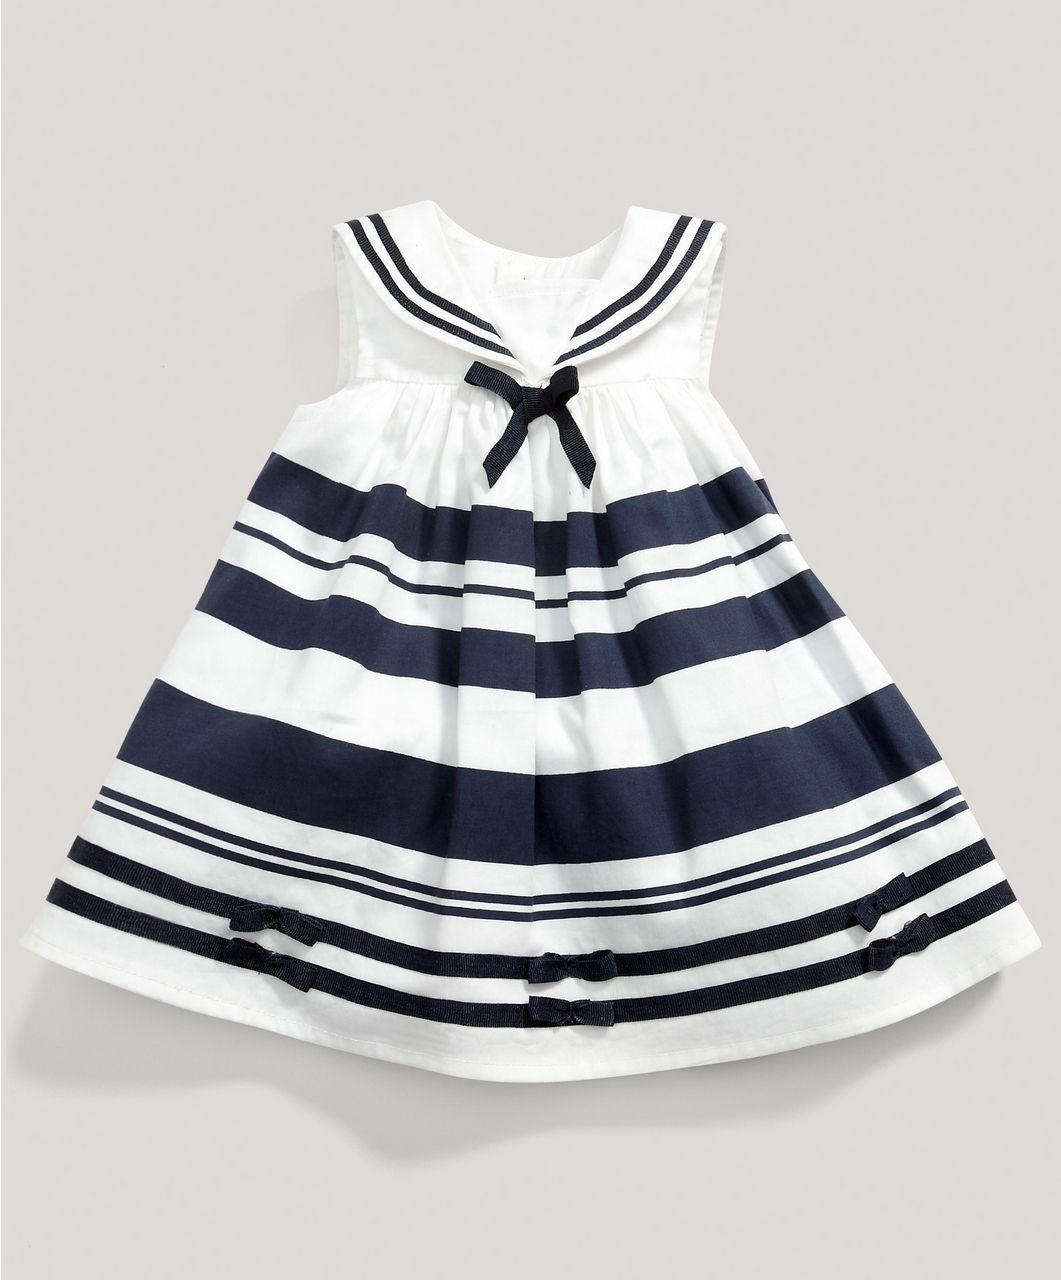 7470ffb7dbc8e Girls Welcome to the World Sailor Dress - Special Occasion & Christening -  Mamas & Papas